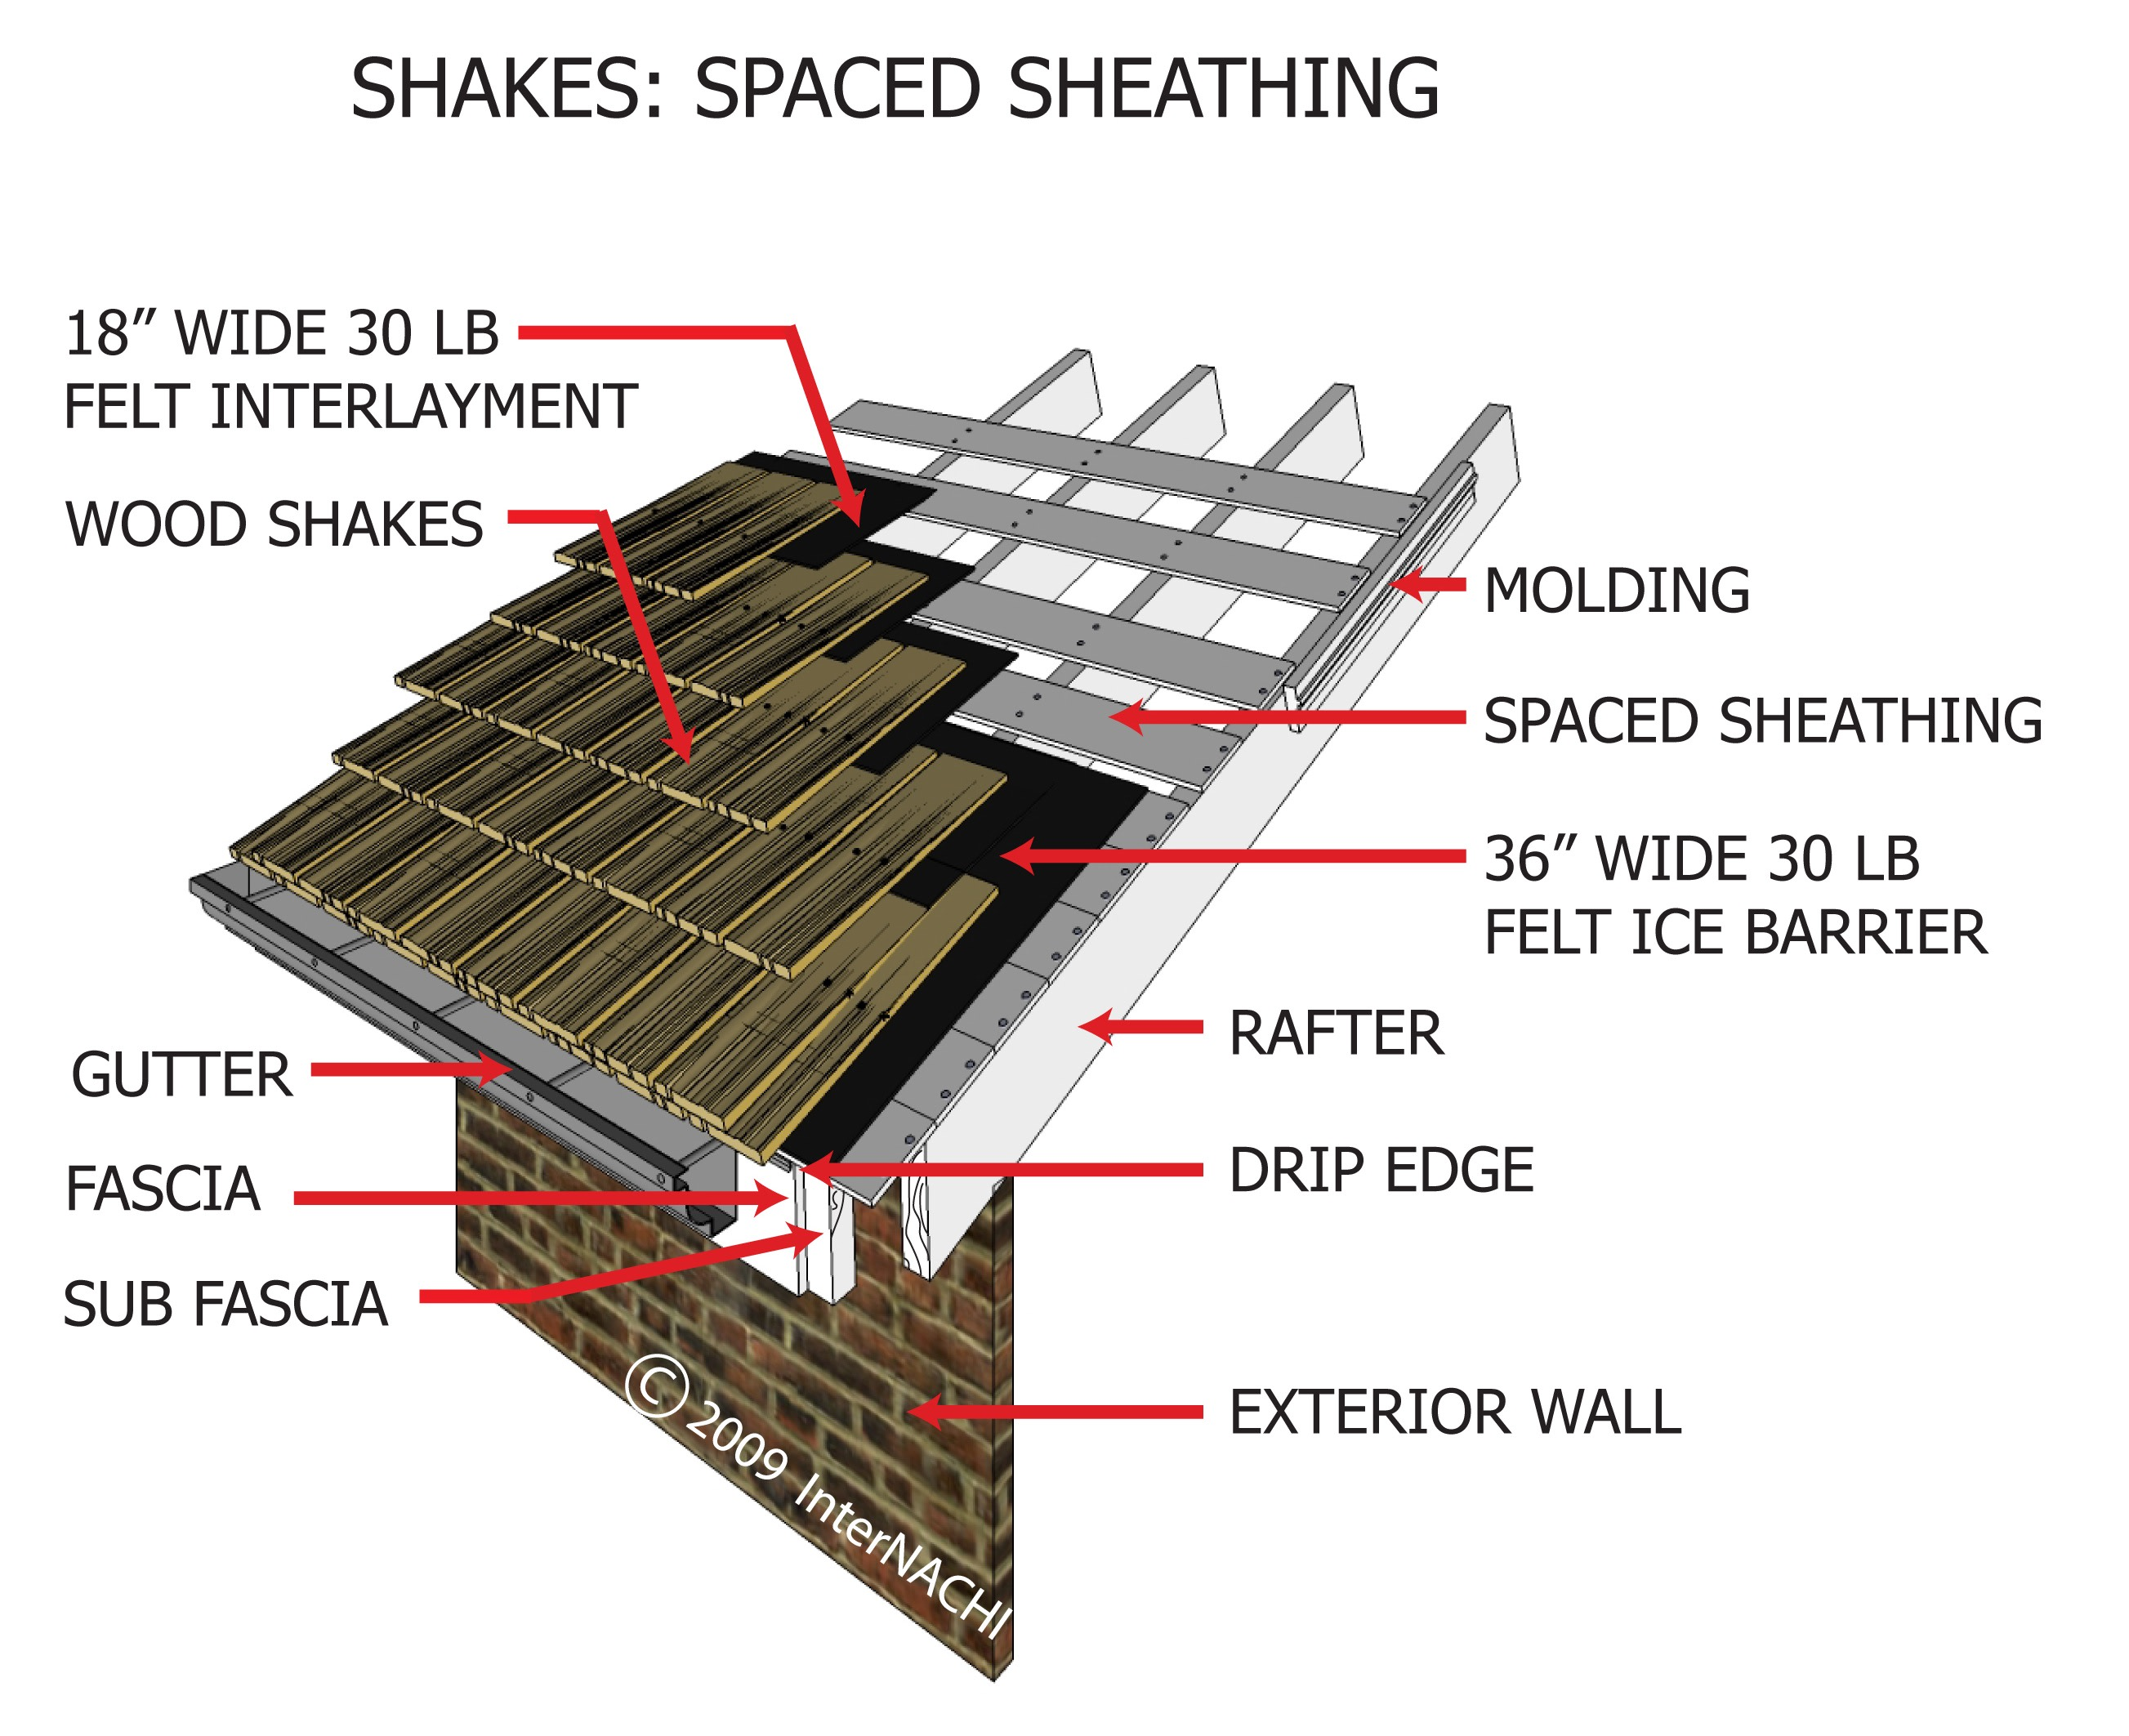 Shakes: Spaced Sheathing